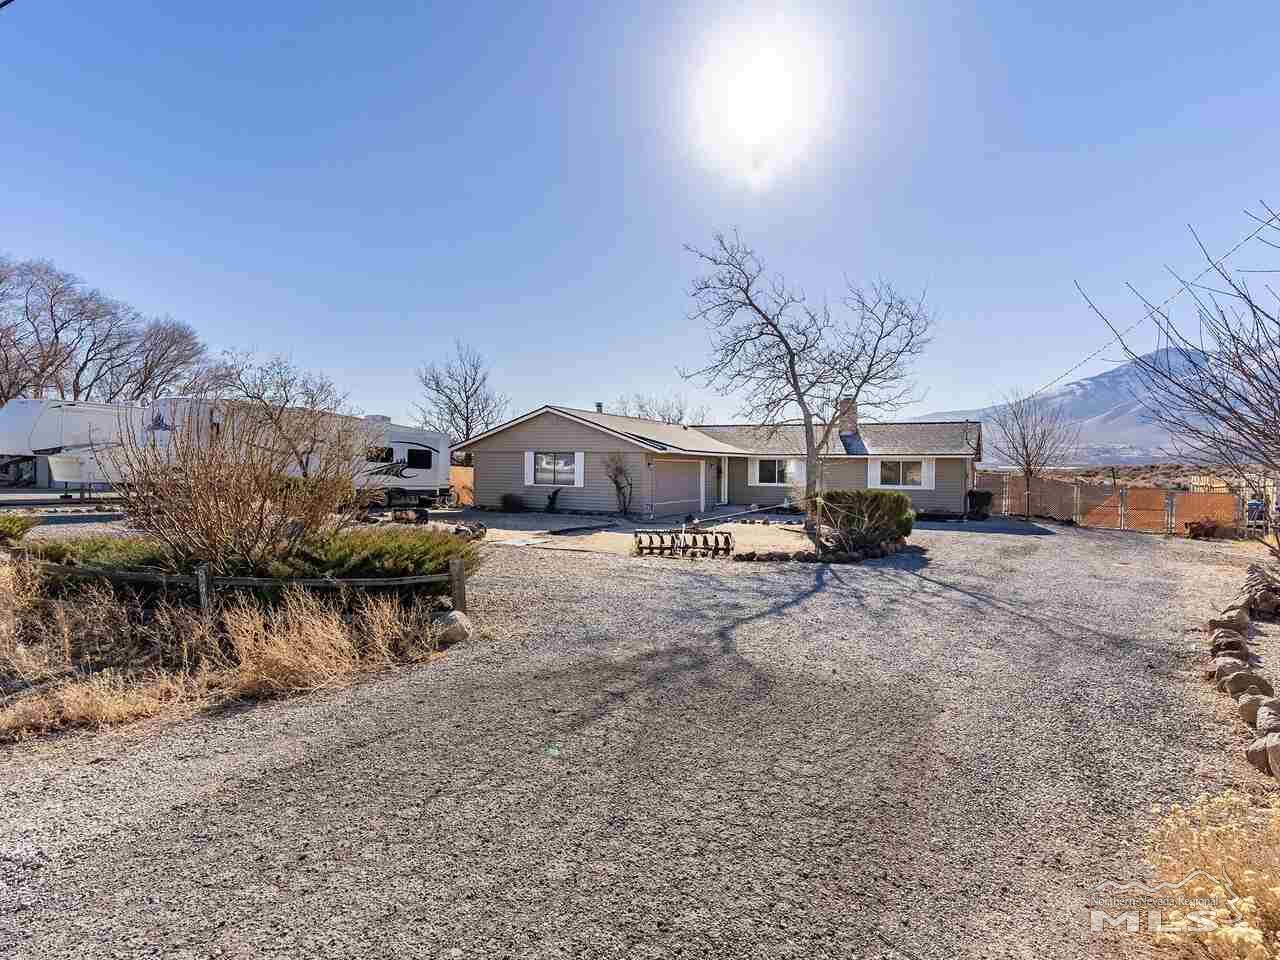 Image for 8400 Osage Rd, Reno, NV 89508